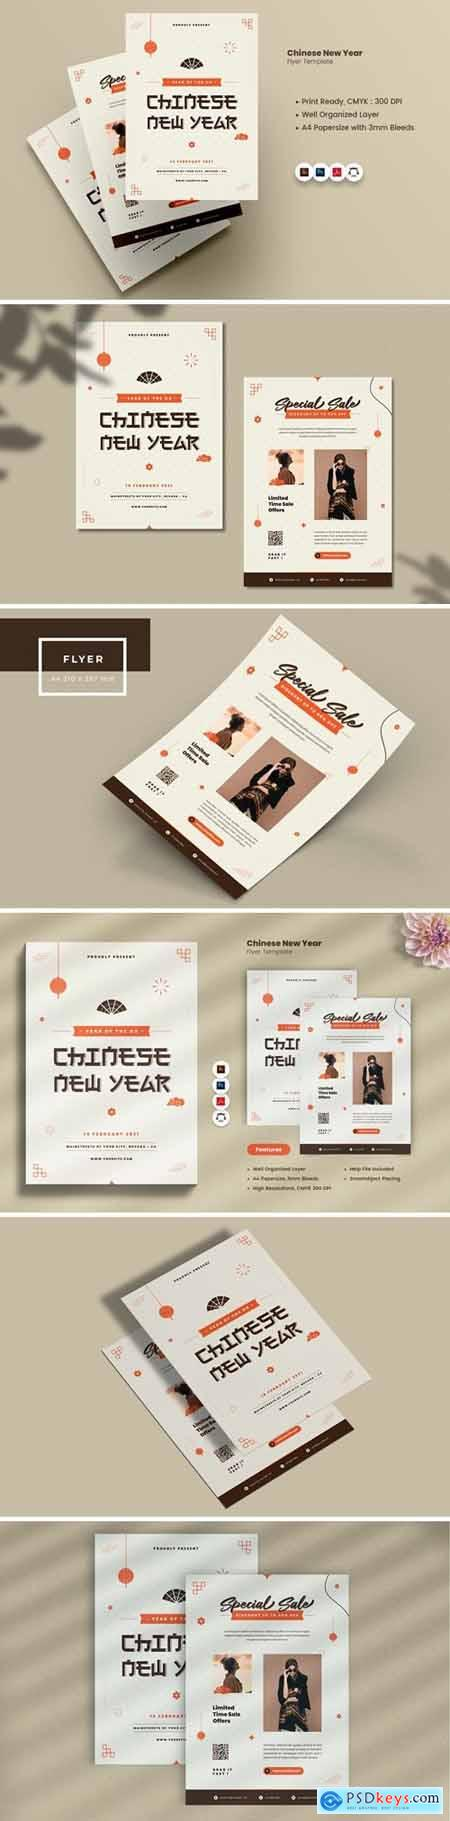 Chinese New Year 2021 Flyer